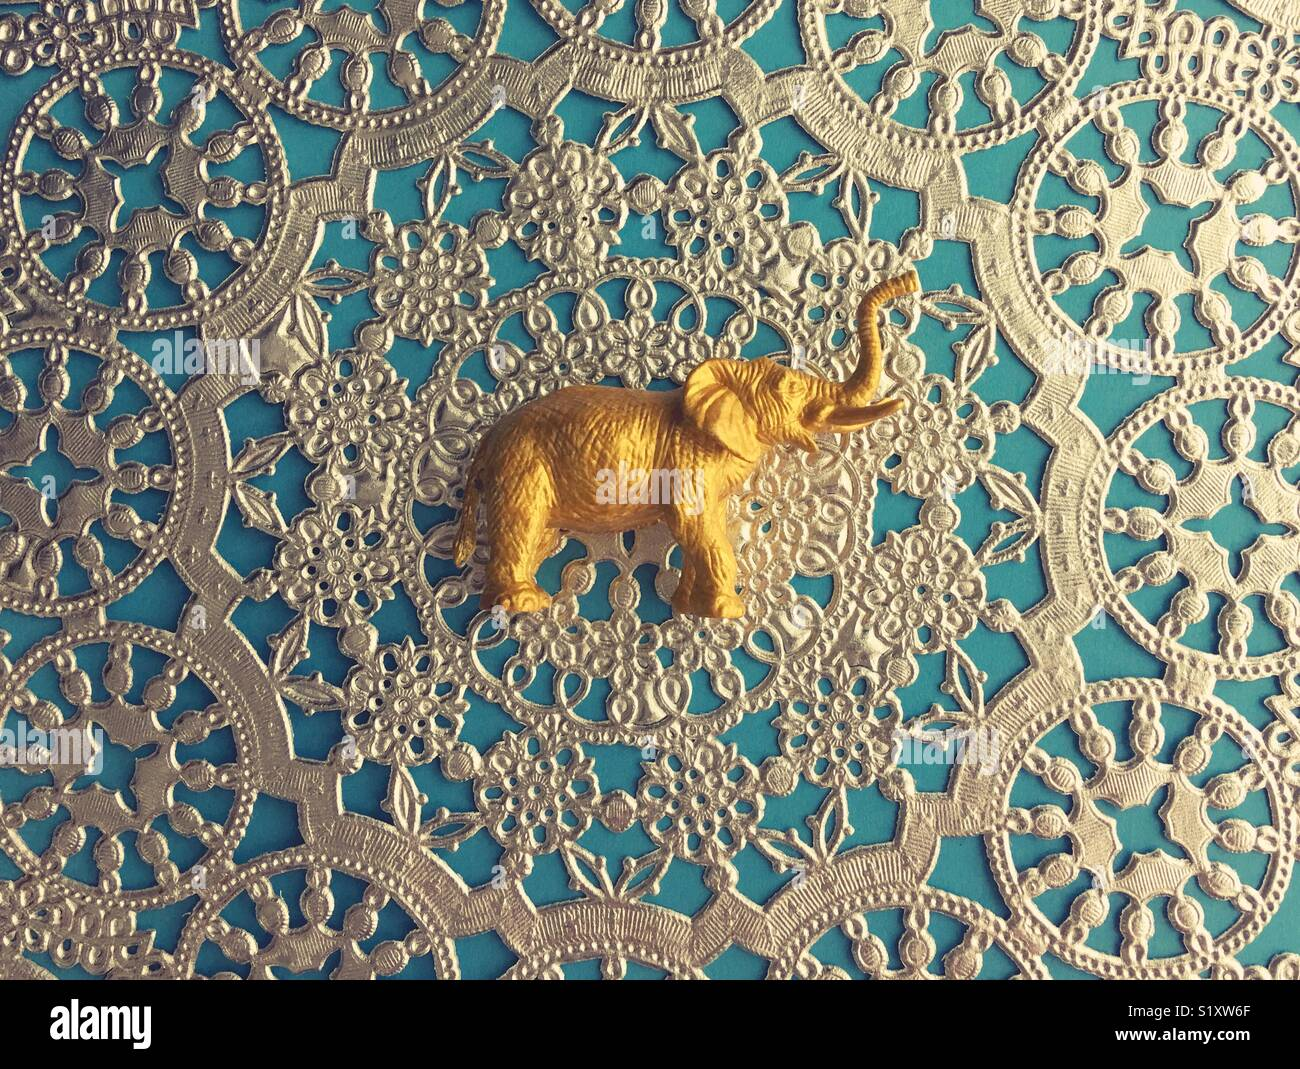 A gold elephant figurine against an ornate background. - Stock Image